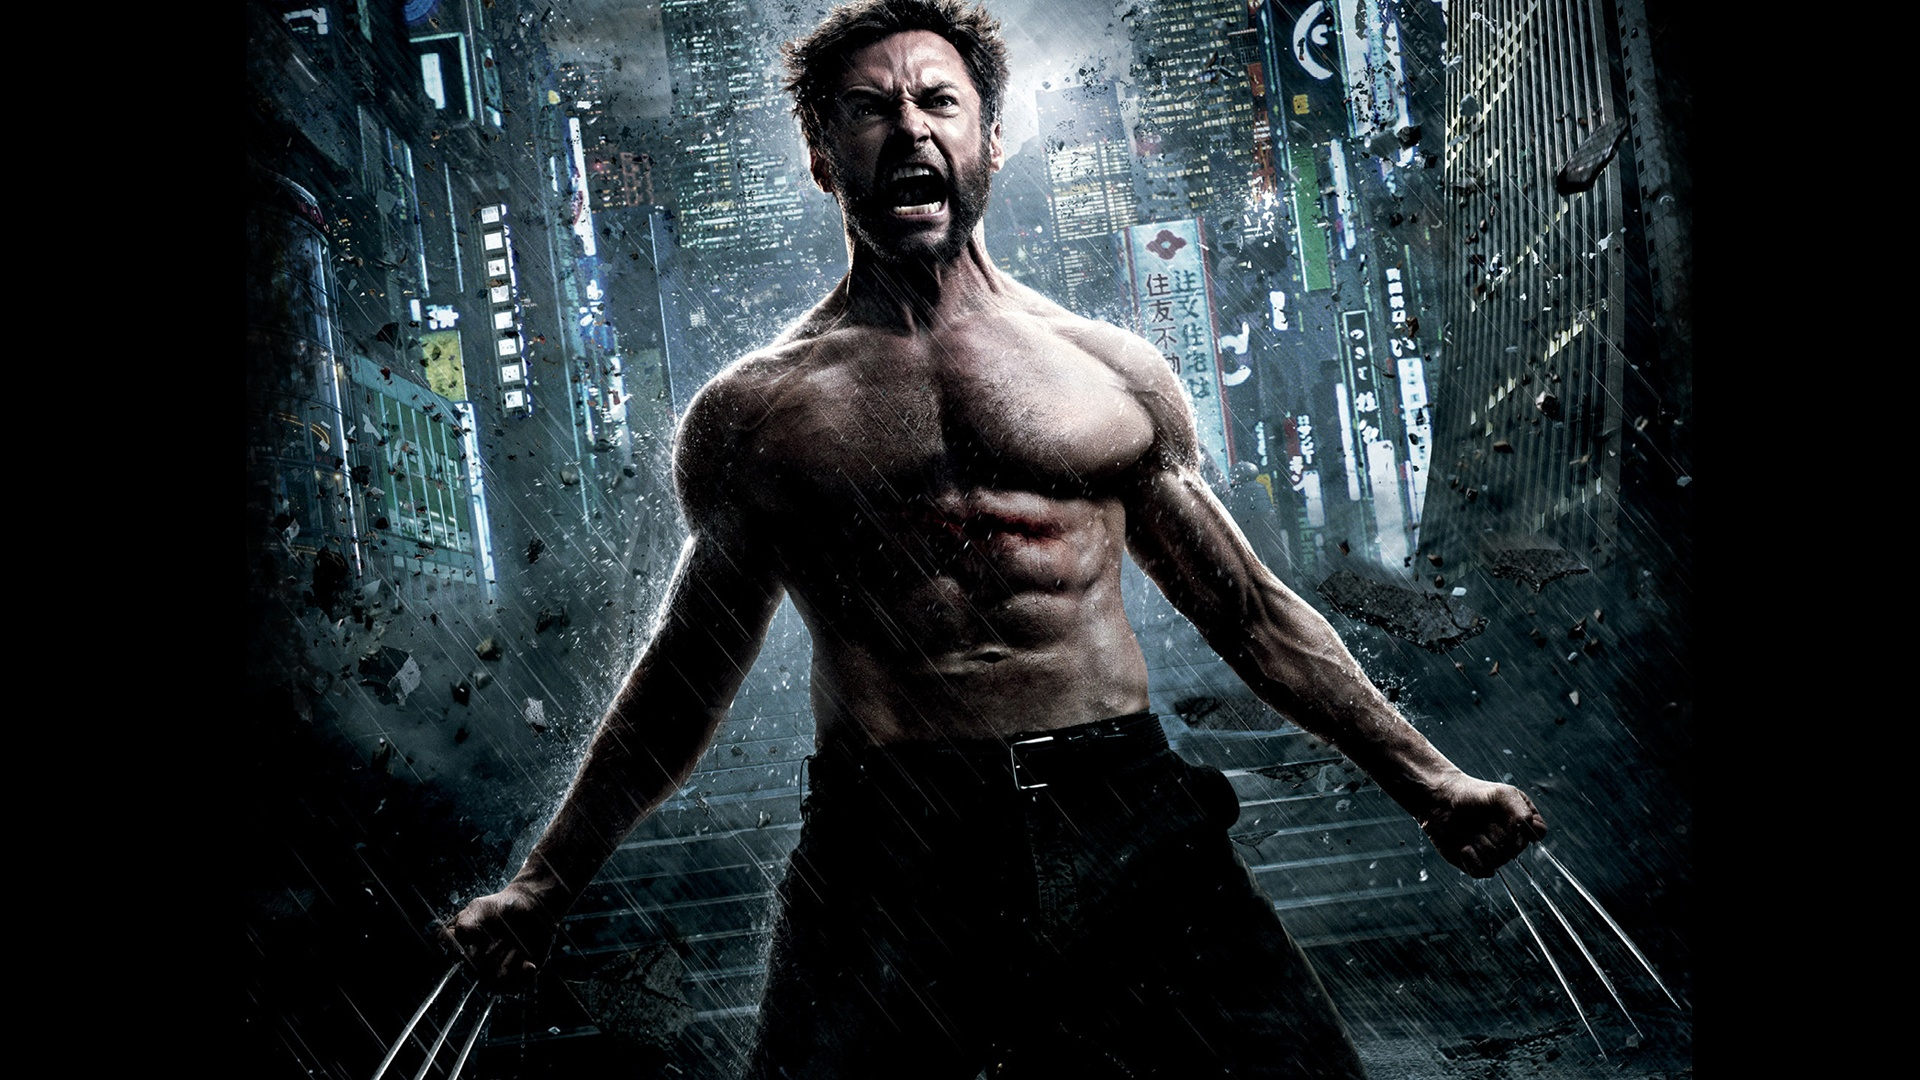 the wolverine yelling